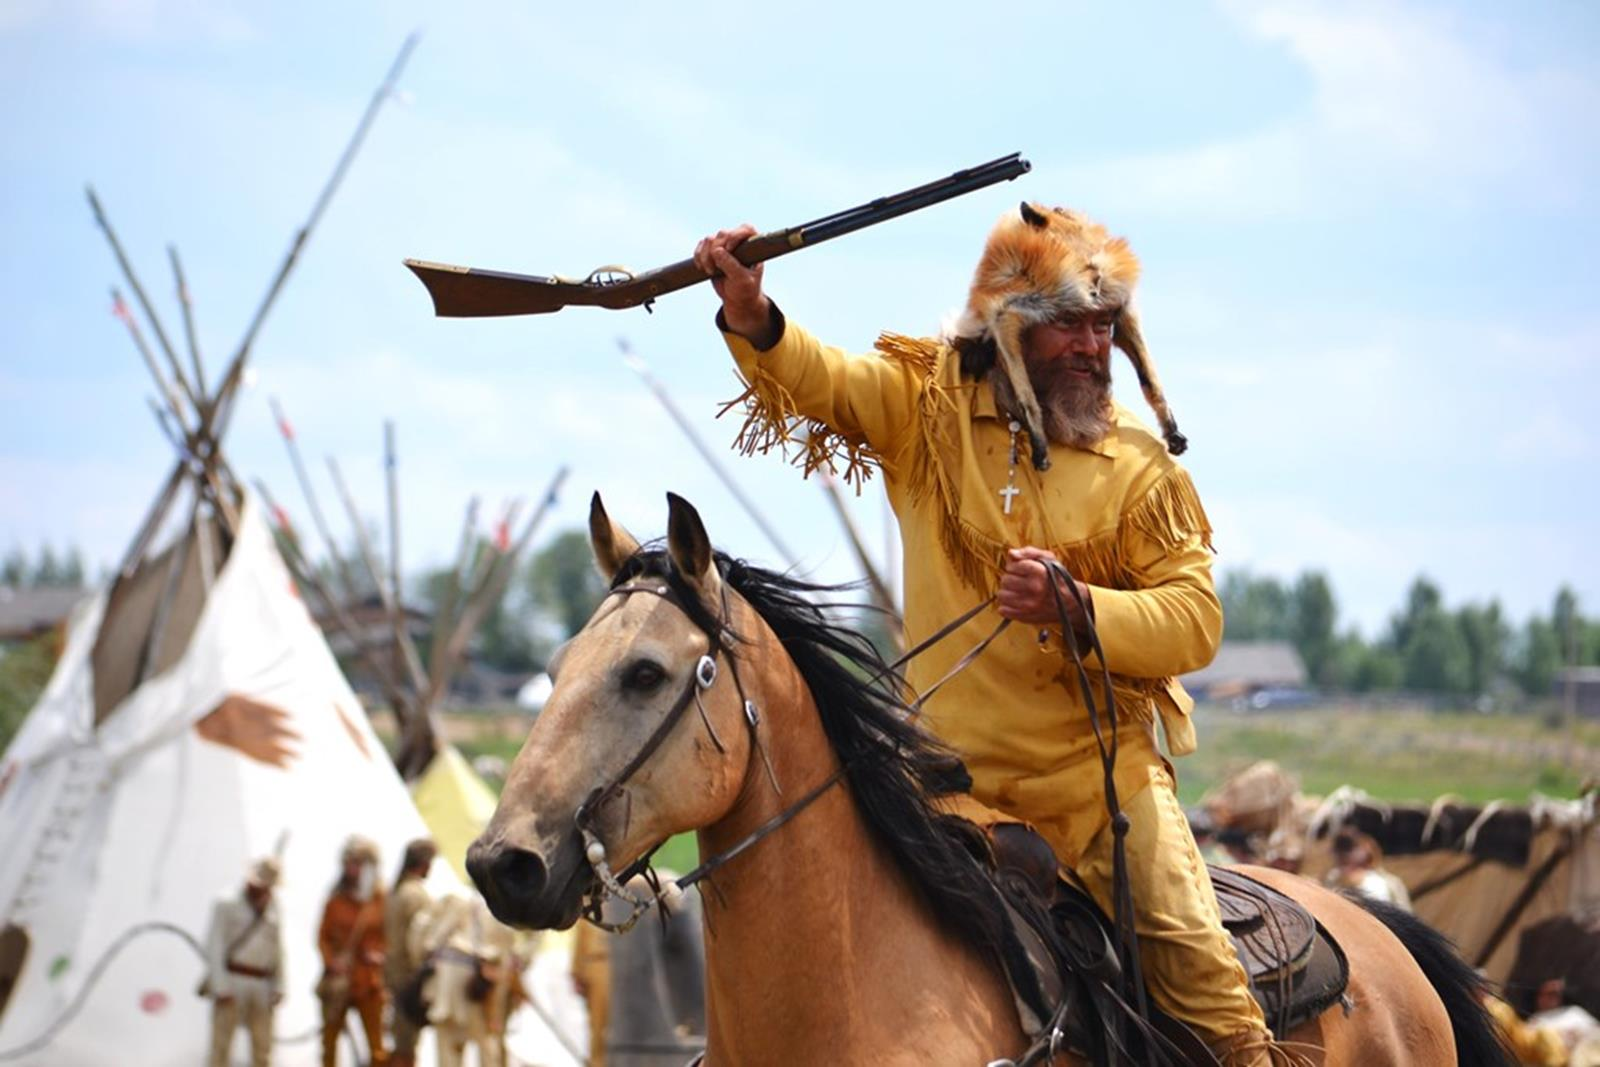 Green River Rendezvous Indian vamp scene. Credit: Jim Bridger